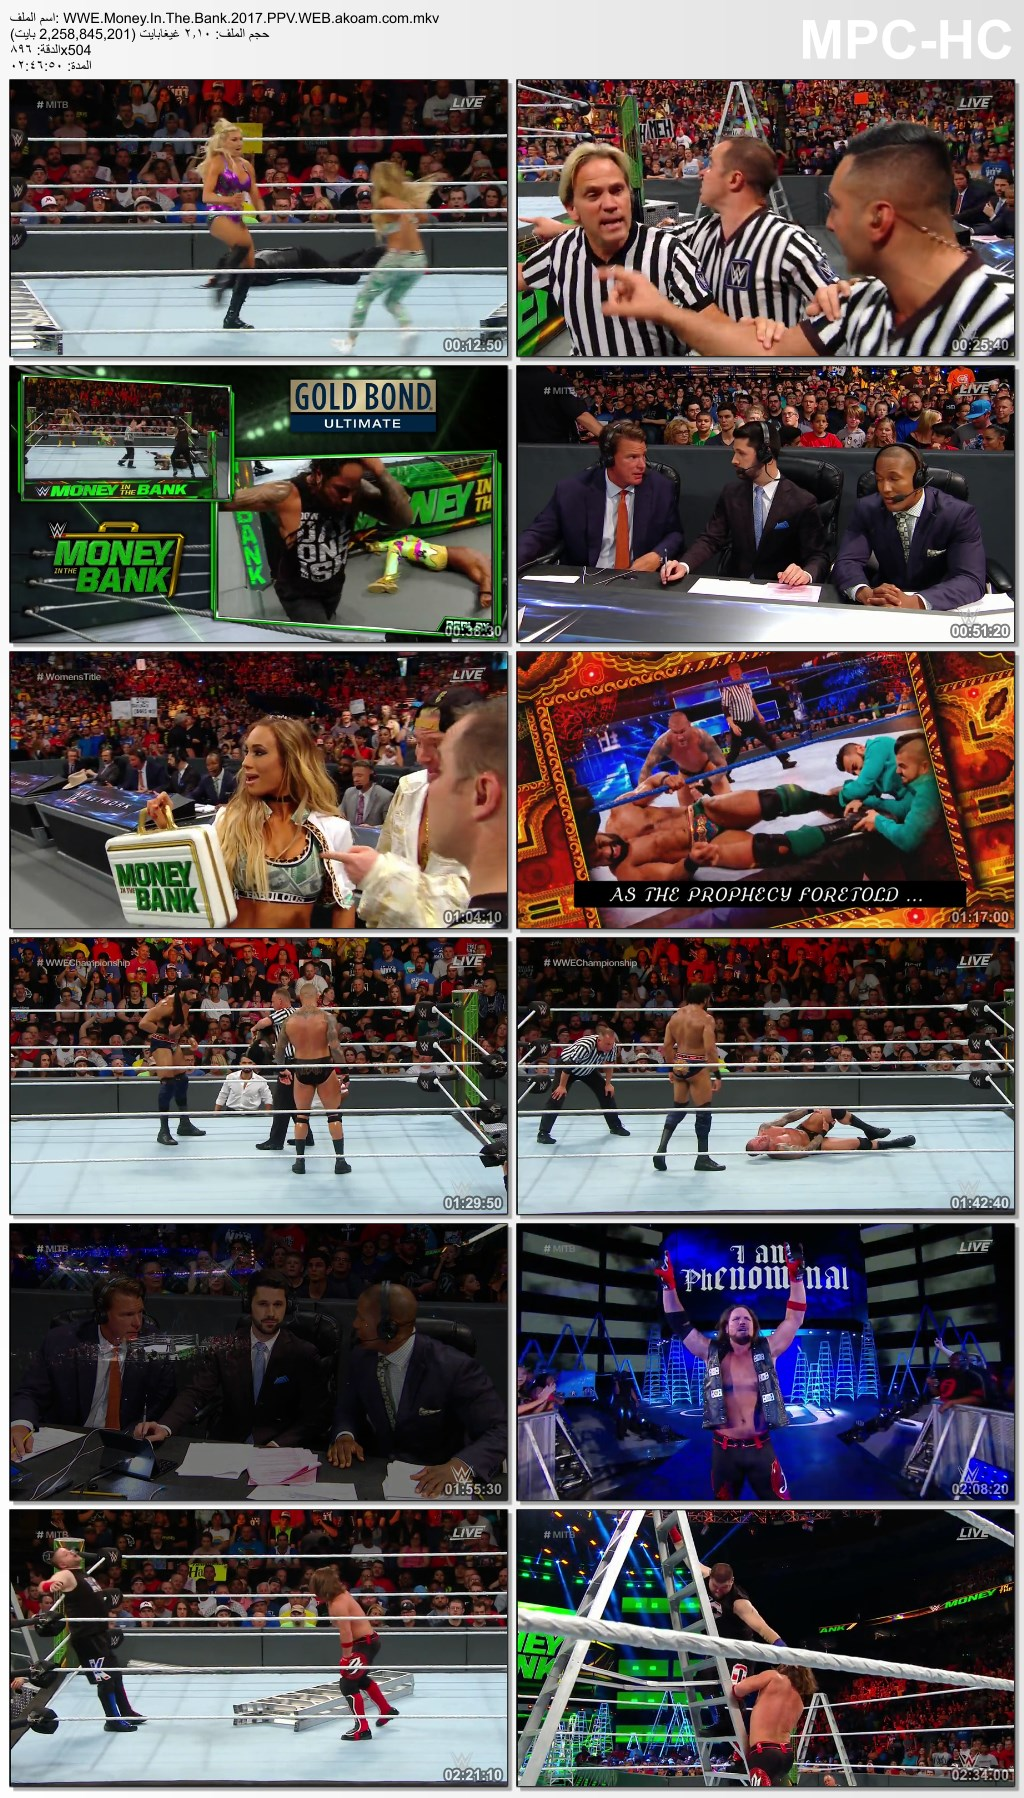 WWE Money in the Bank 2017,موني ان ذا بانك,موني ان ذا بانك 2017,WWE,Money In The Bank